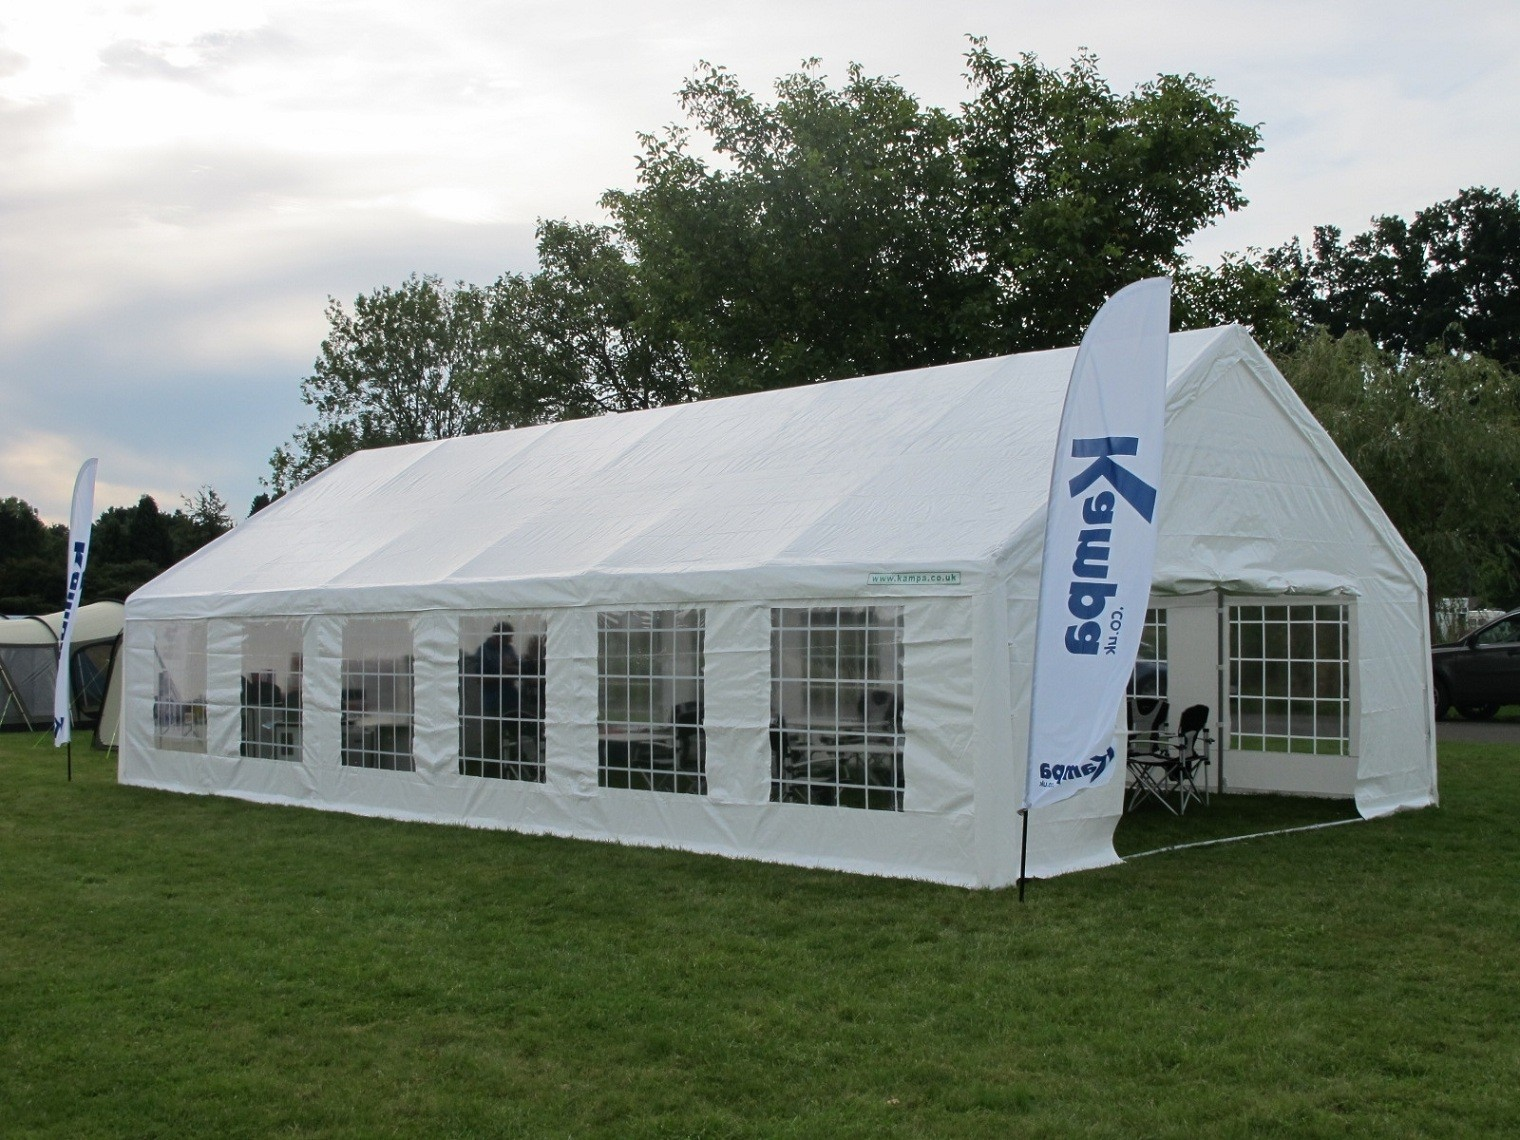 kampa original party tent 4m x 10m from kampa for. Black Bedroom Furniture Sets. Home Design Ideas